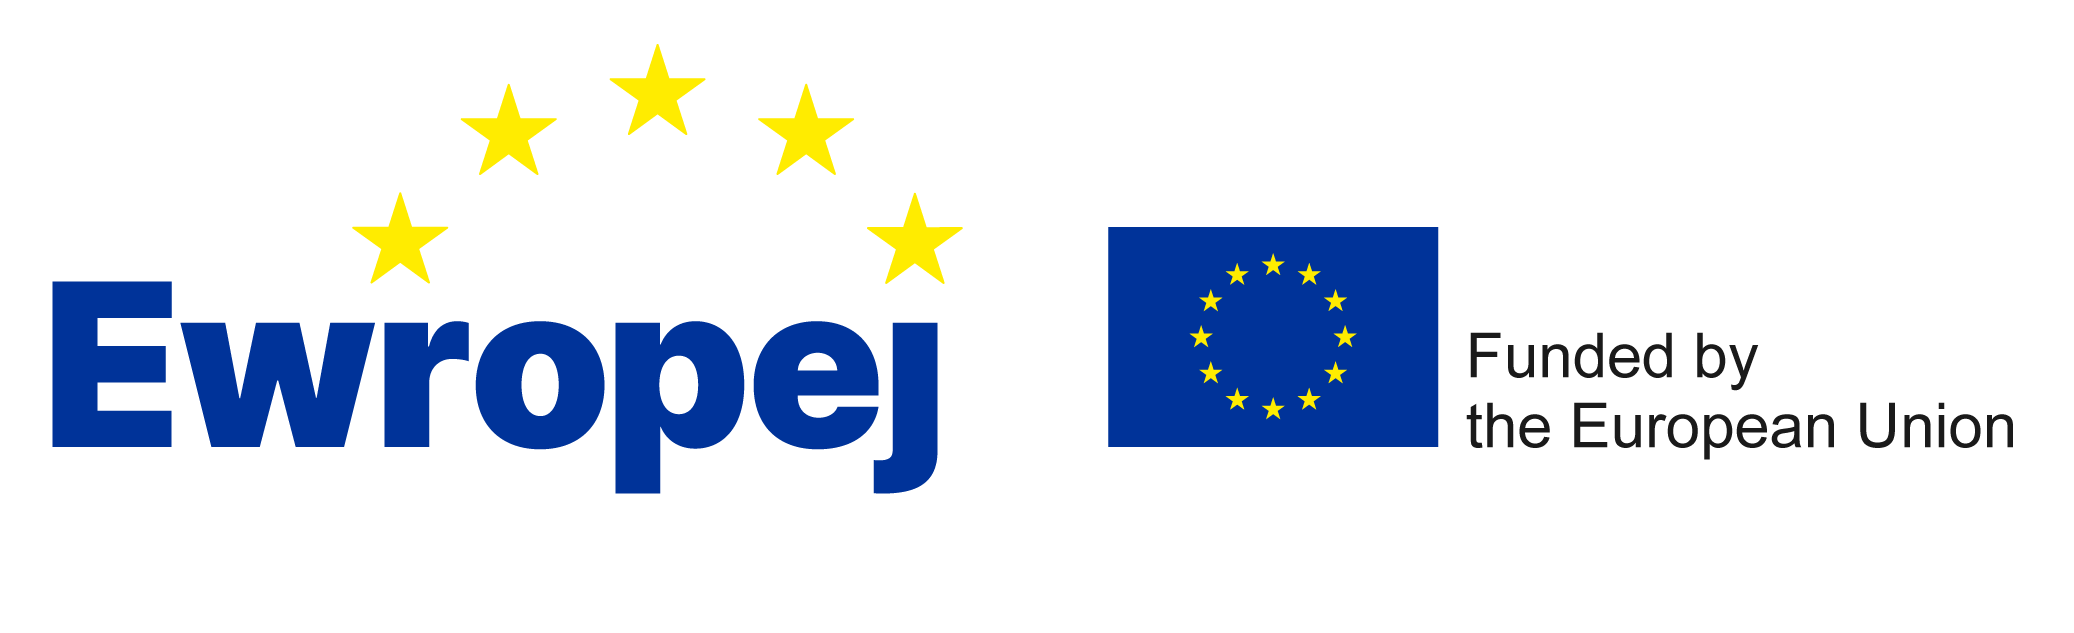 Ewropej Funded by the European Union